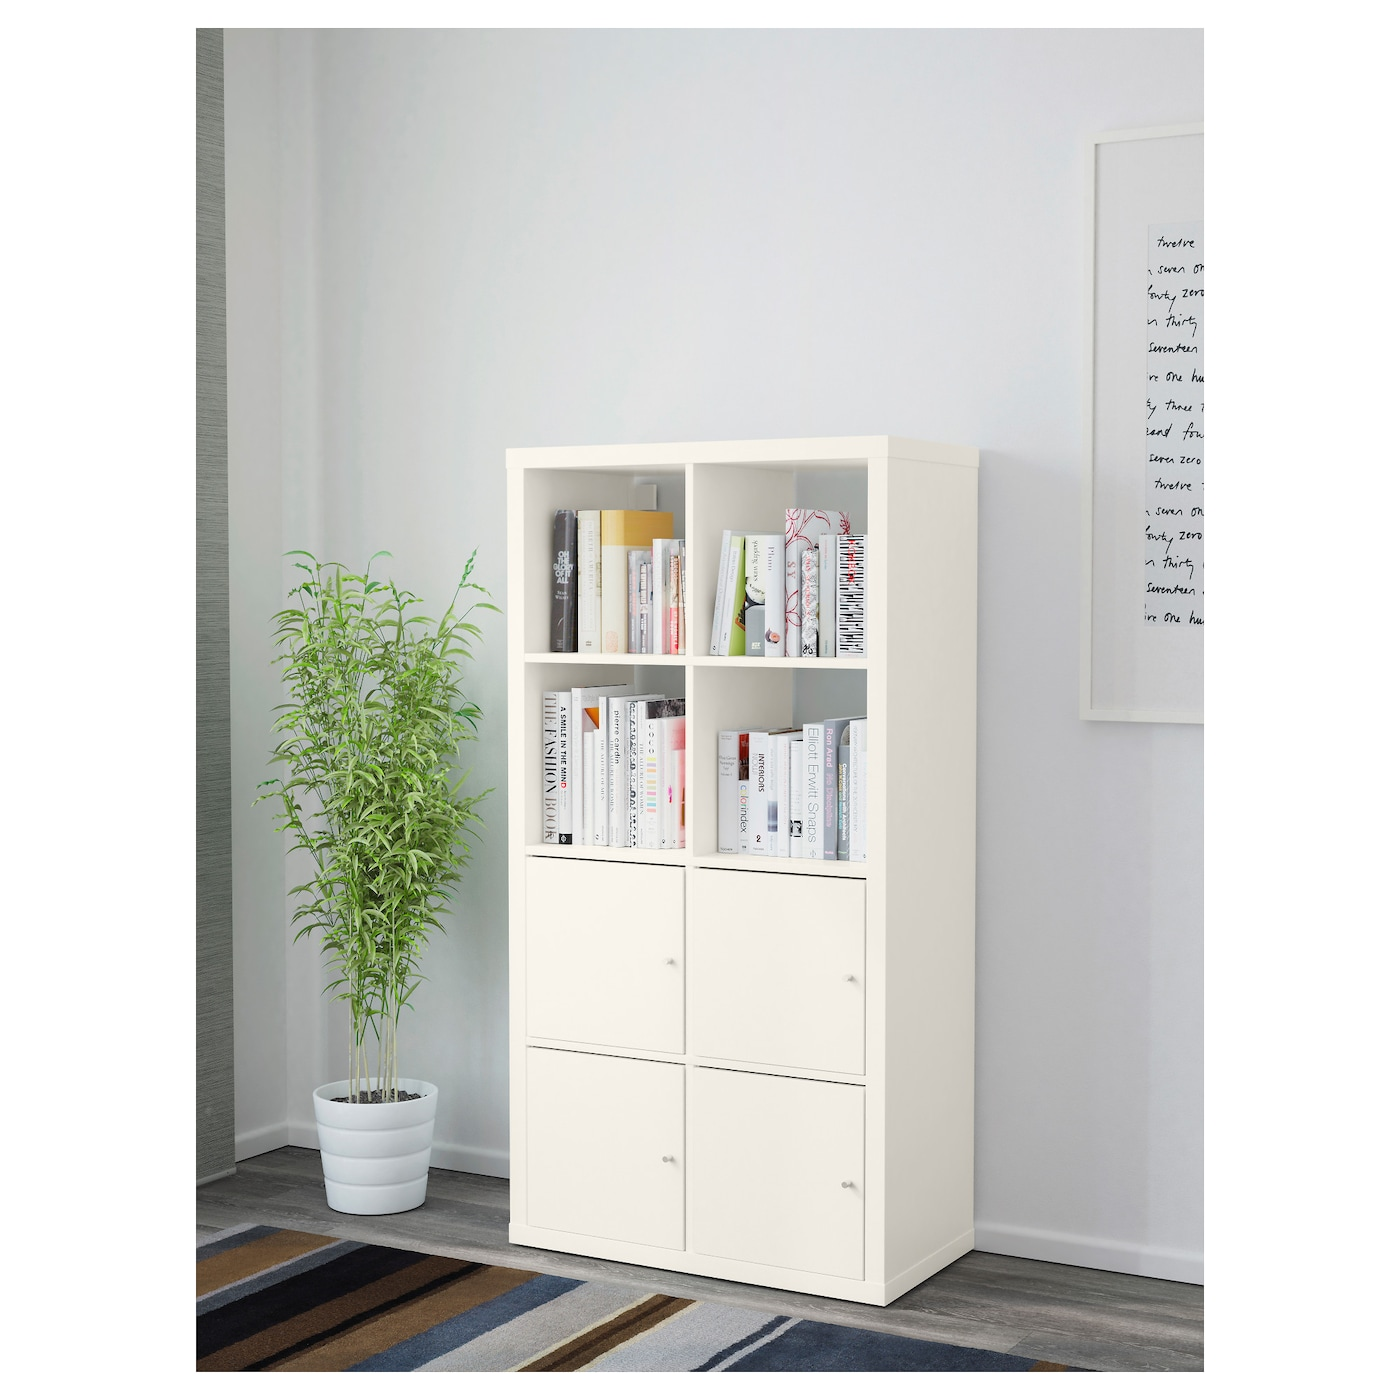 kallax tag re avec portes blanc 77 x 147 cm ikea. Black Bedroom Furniture Sets. Home Design Ideas